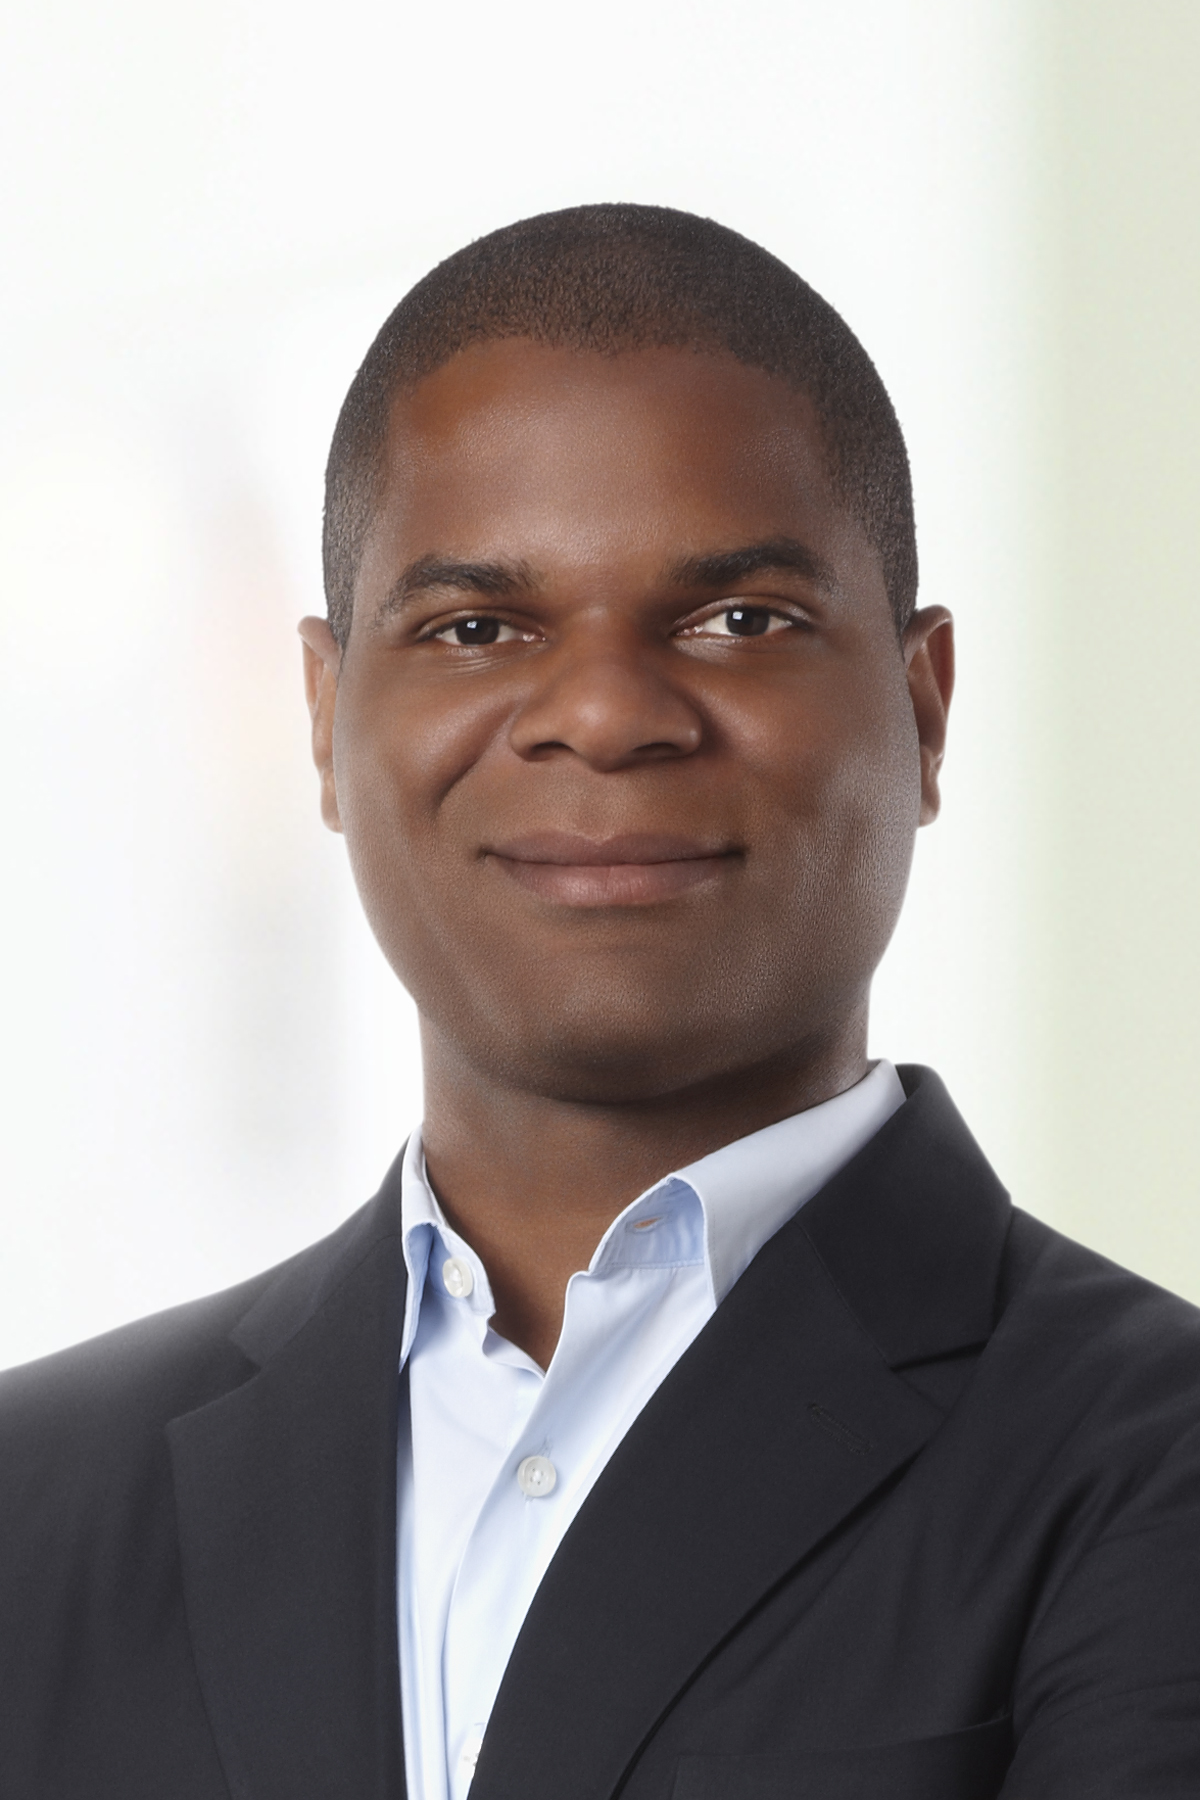 Nnamdi Orakwue, VP of Dell Cloud